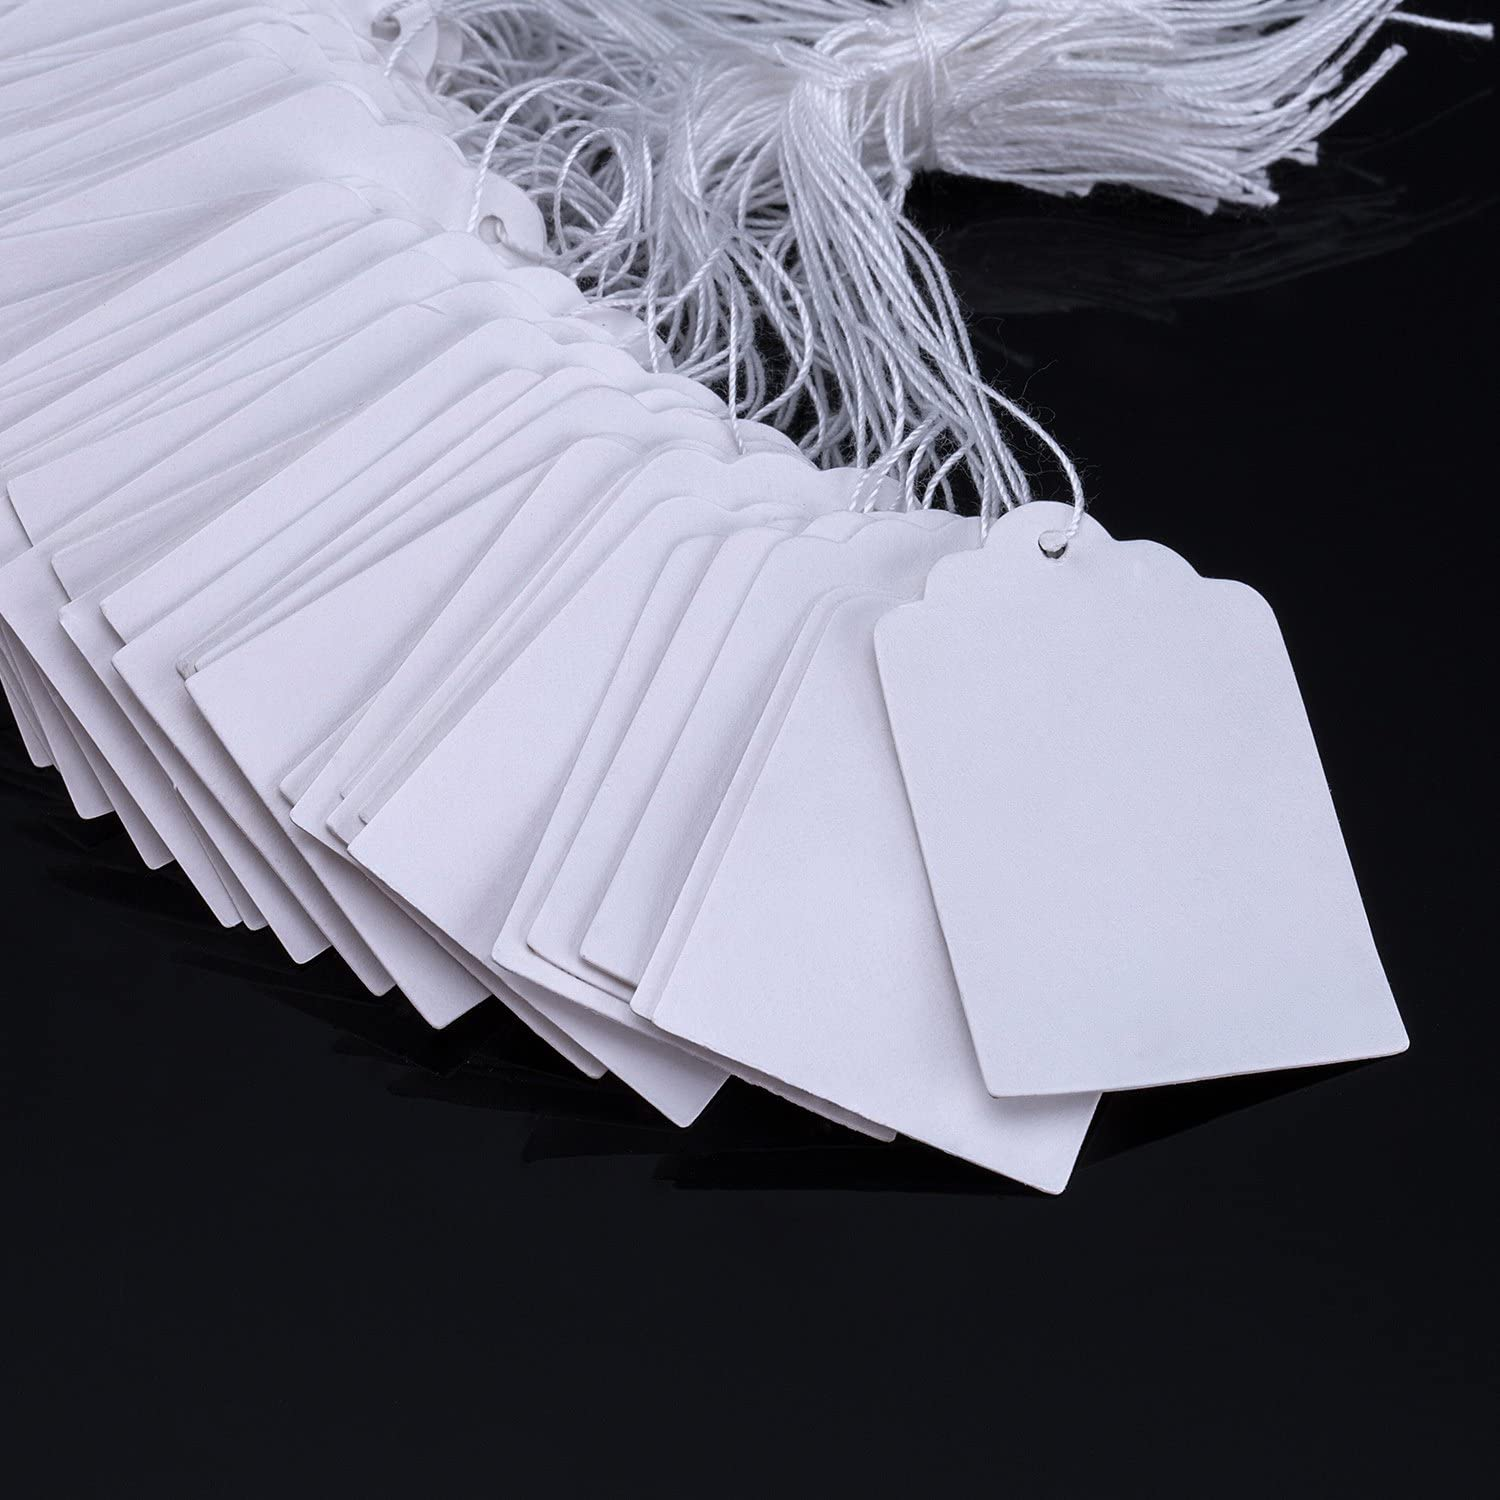 Golden Edge White Marking Tags Price Tags Writable Display Labels with Hanging String 500 Pack 25x15mm